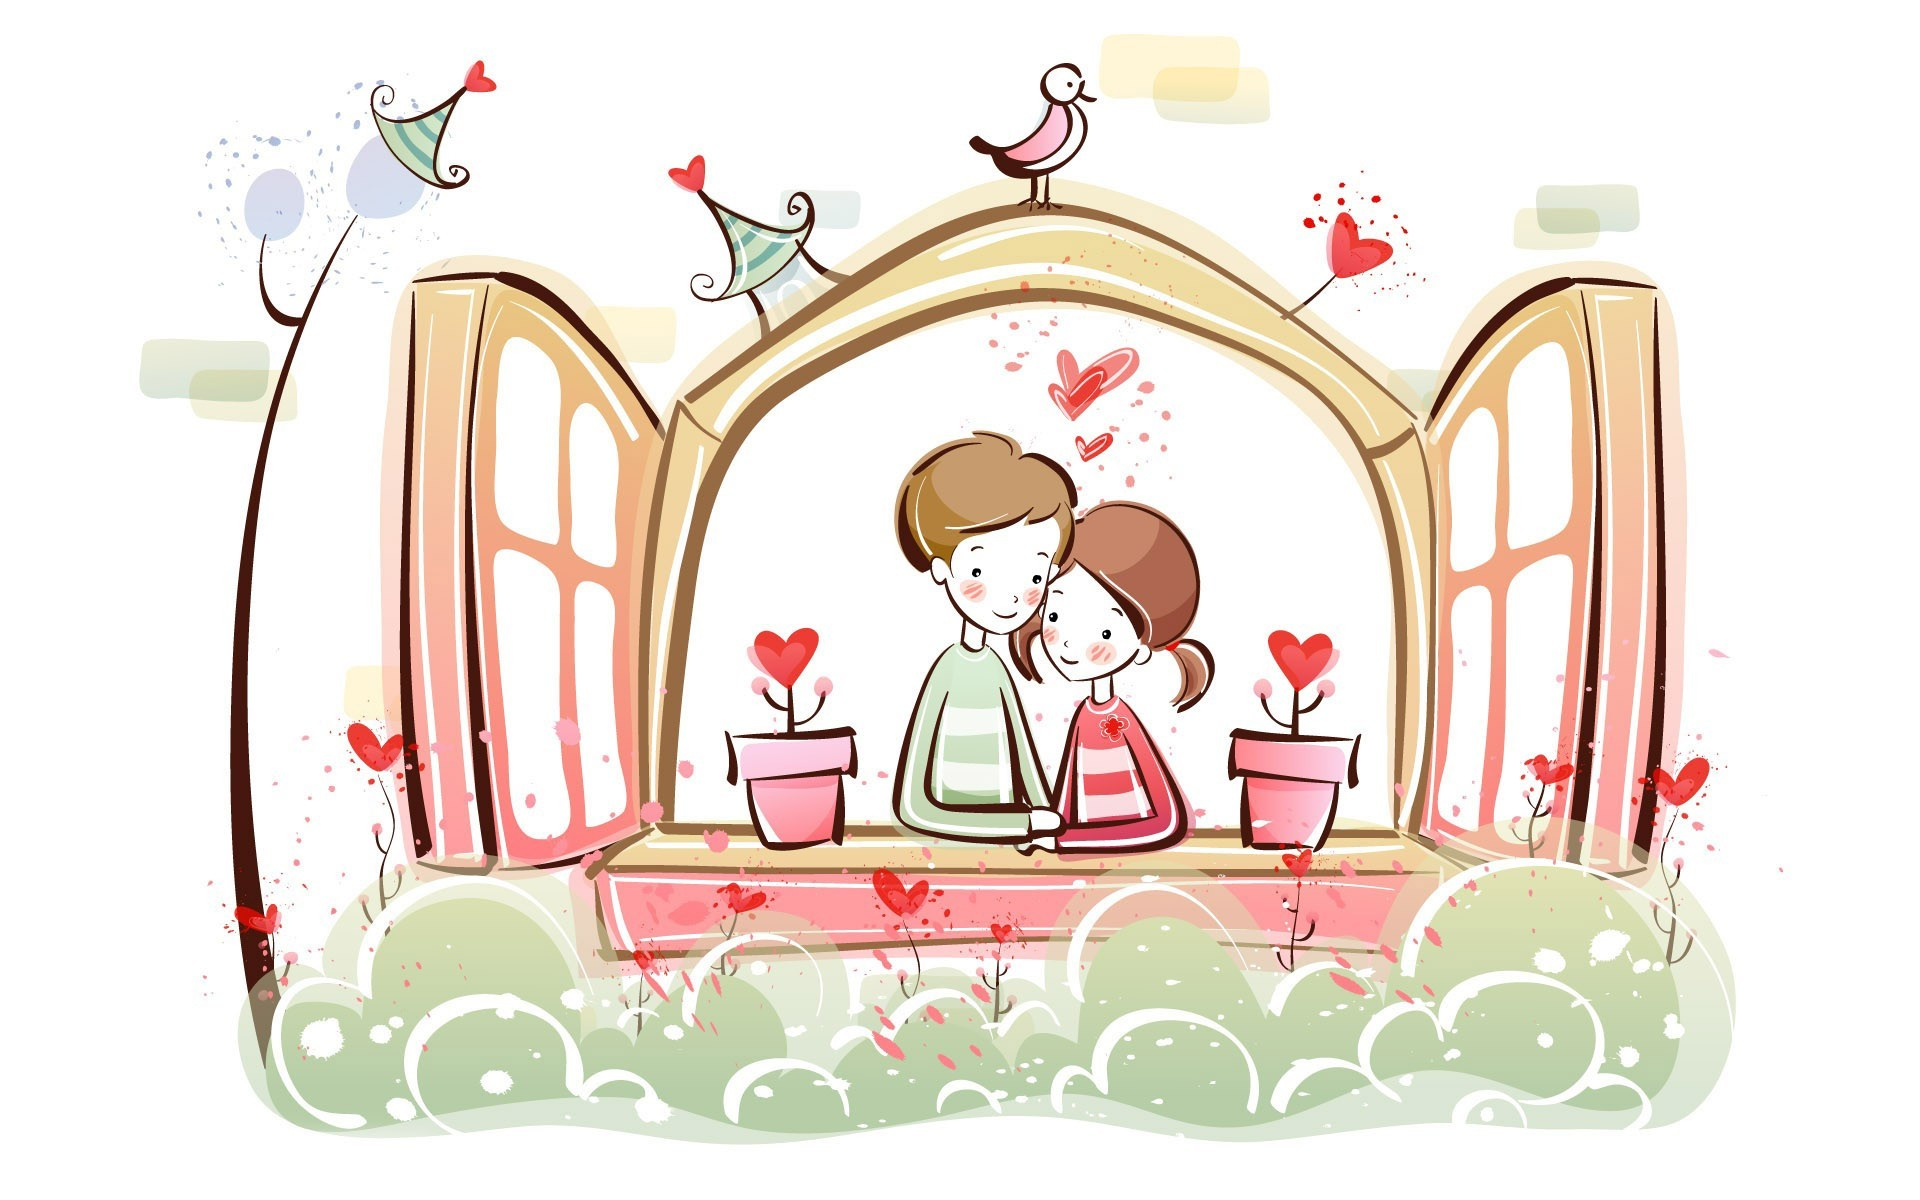 Love Wallpaper In cartoon : cartoon Love Wallpaper - Wallpaper, High Definition, High ...